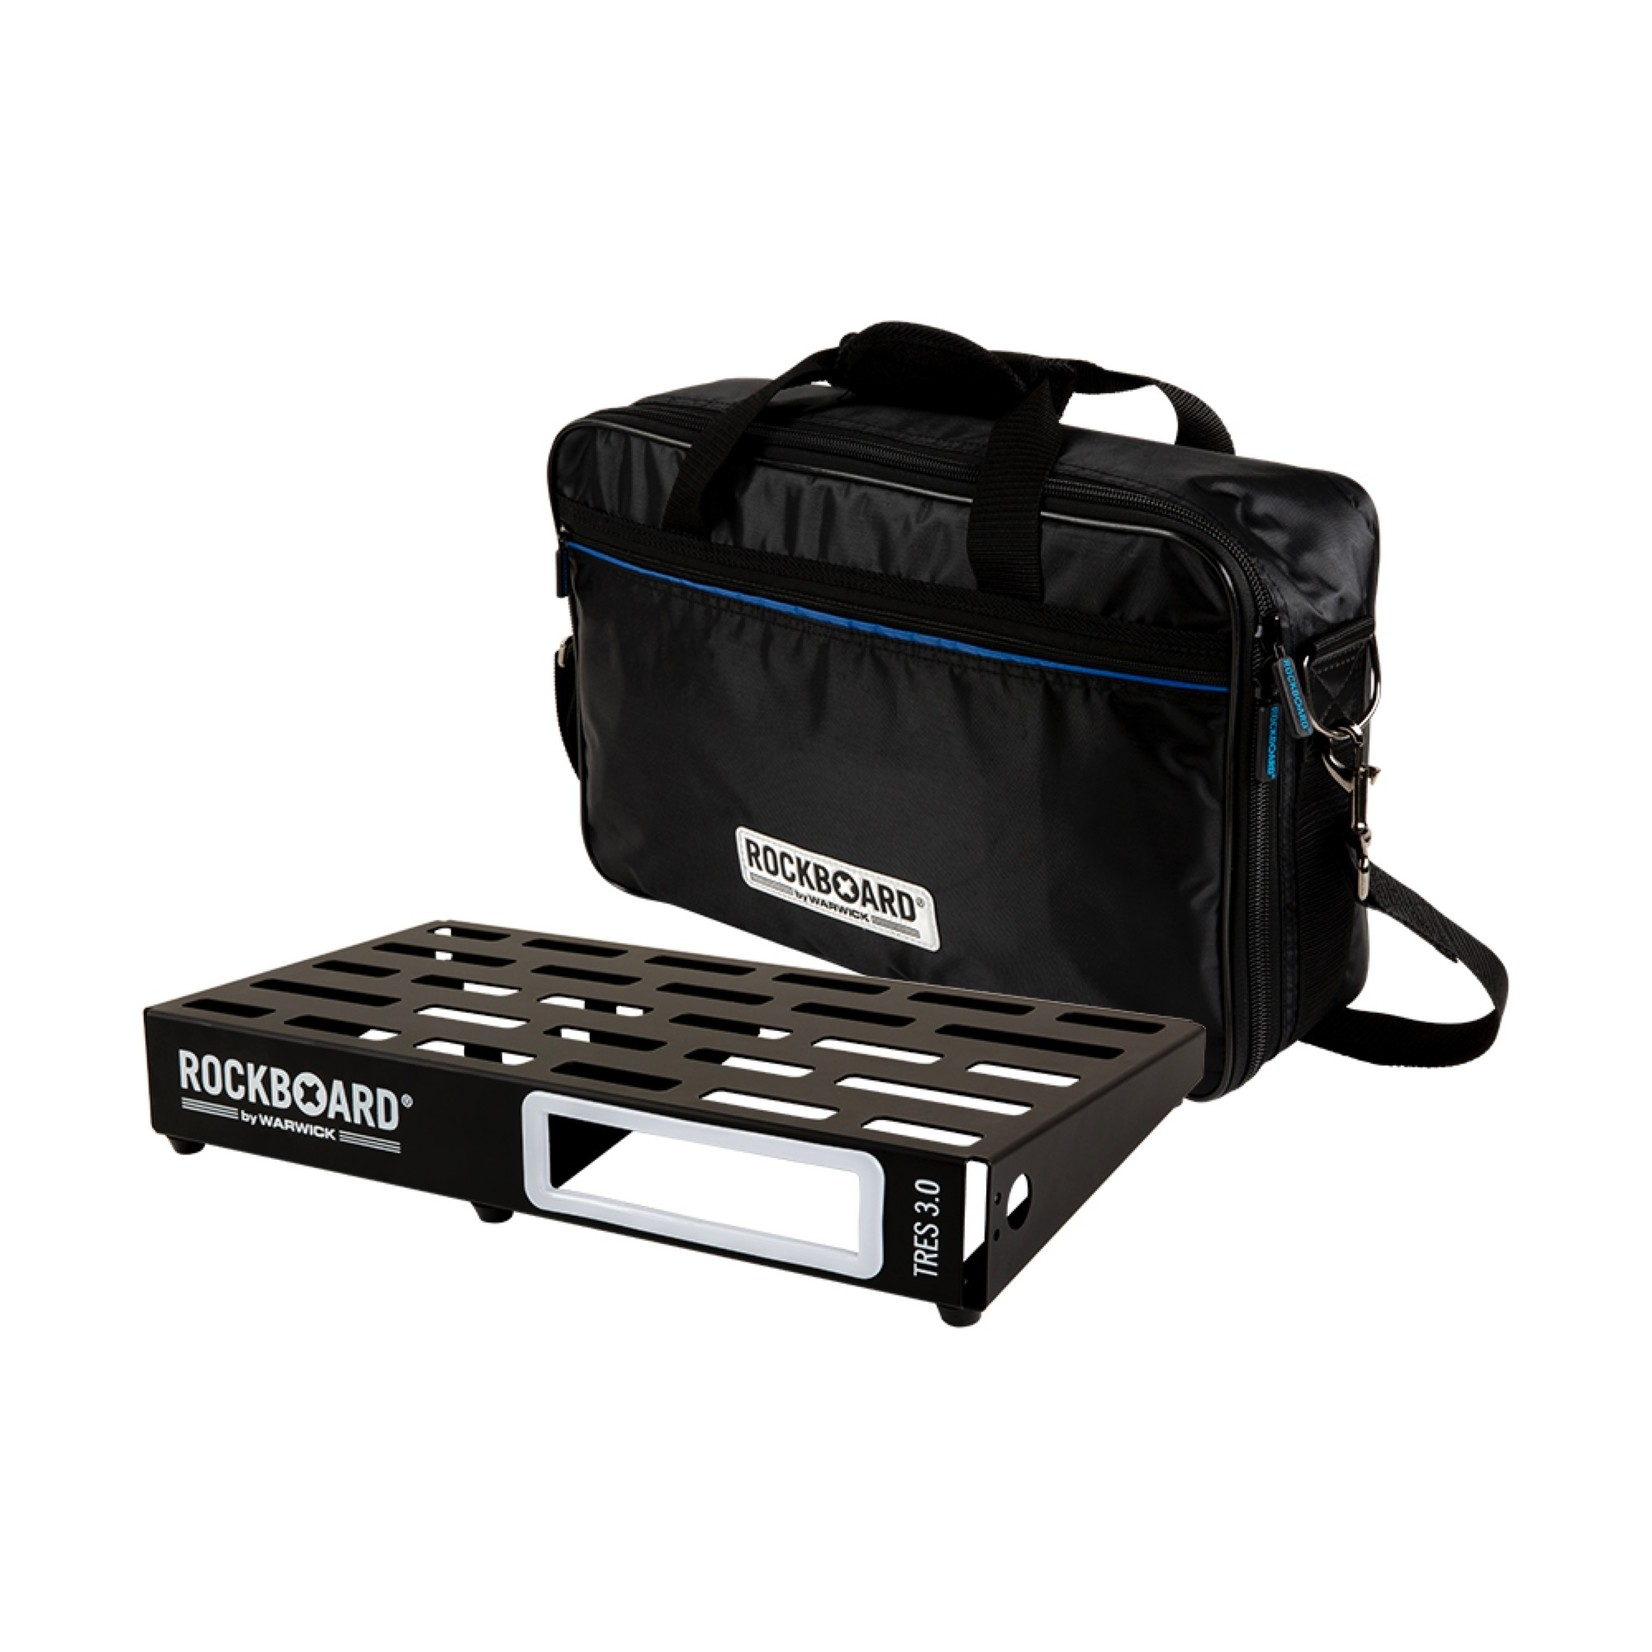 """Rockboard RockBoard TRES 3.0, Pedalboard with Gig Bag, for 5-10 effects pedals (approx. 17.3"""" x 9.3"""")"""